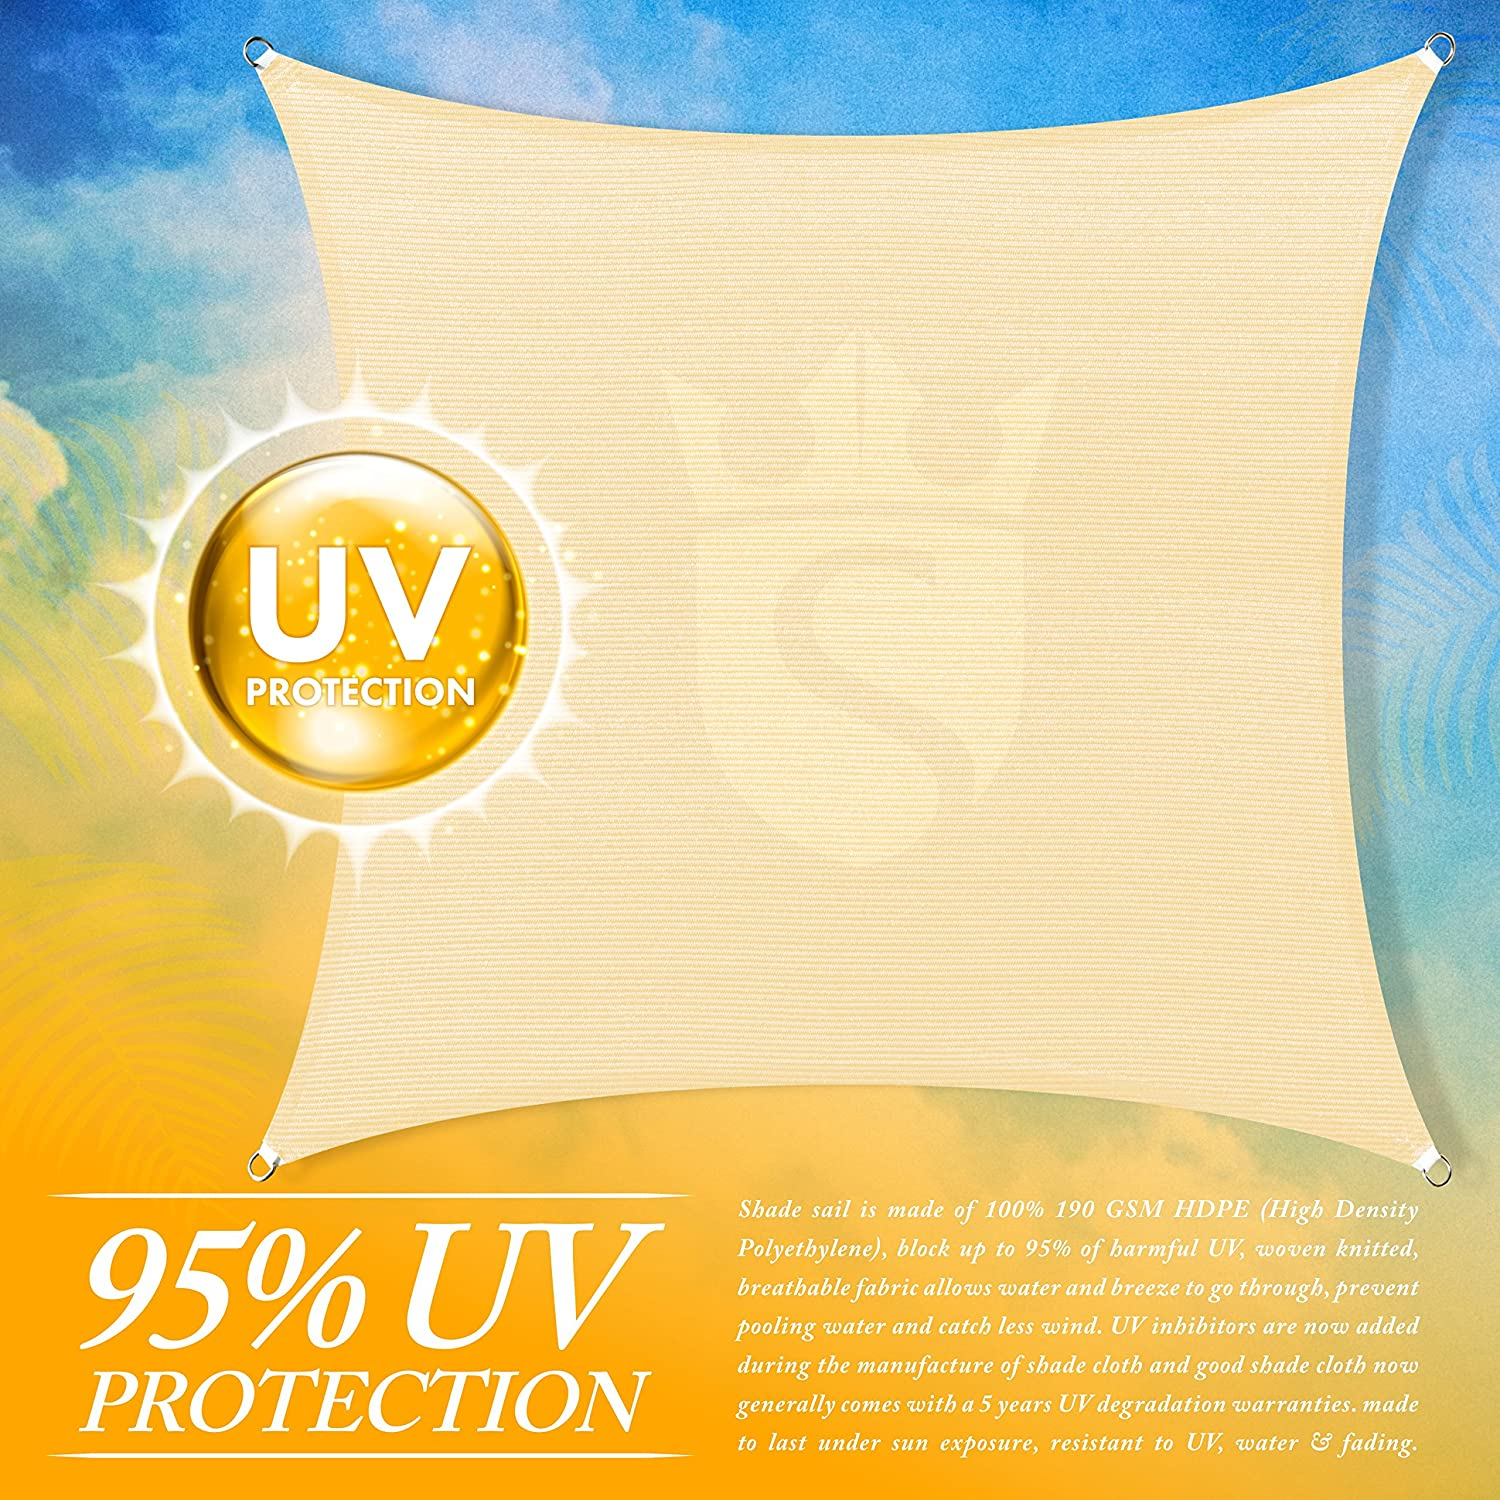 Royal Shade 12 x 12 Beige Square Sun Shade Sail Canopy Outdoor Patio Fabric Shelter Cloth Screen Awning We Make Custom Size 200 GSM 5 Years Warranty Heavy Duty 95/% UV Protection